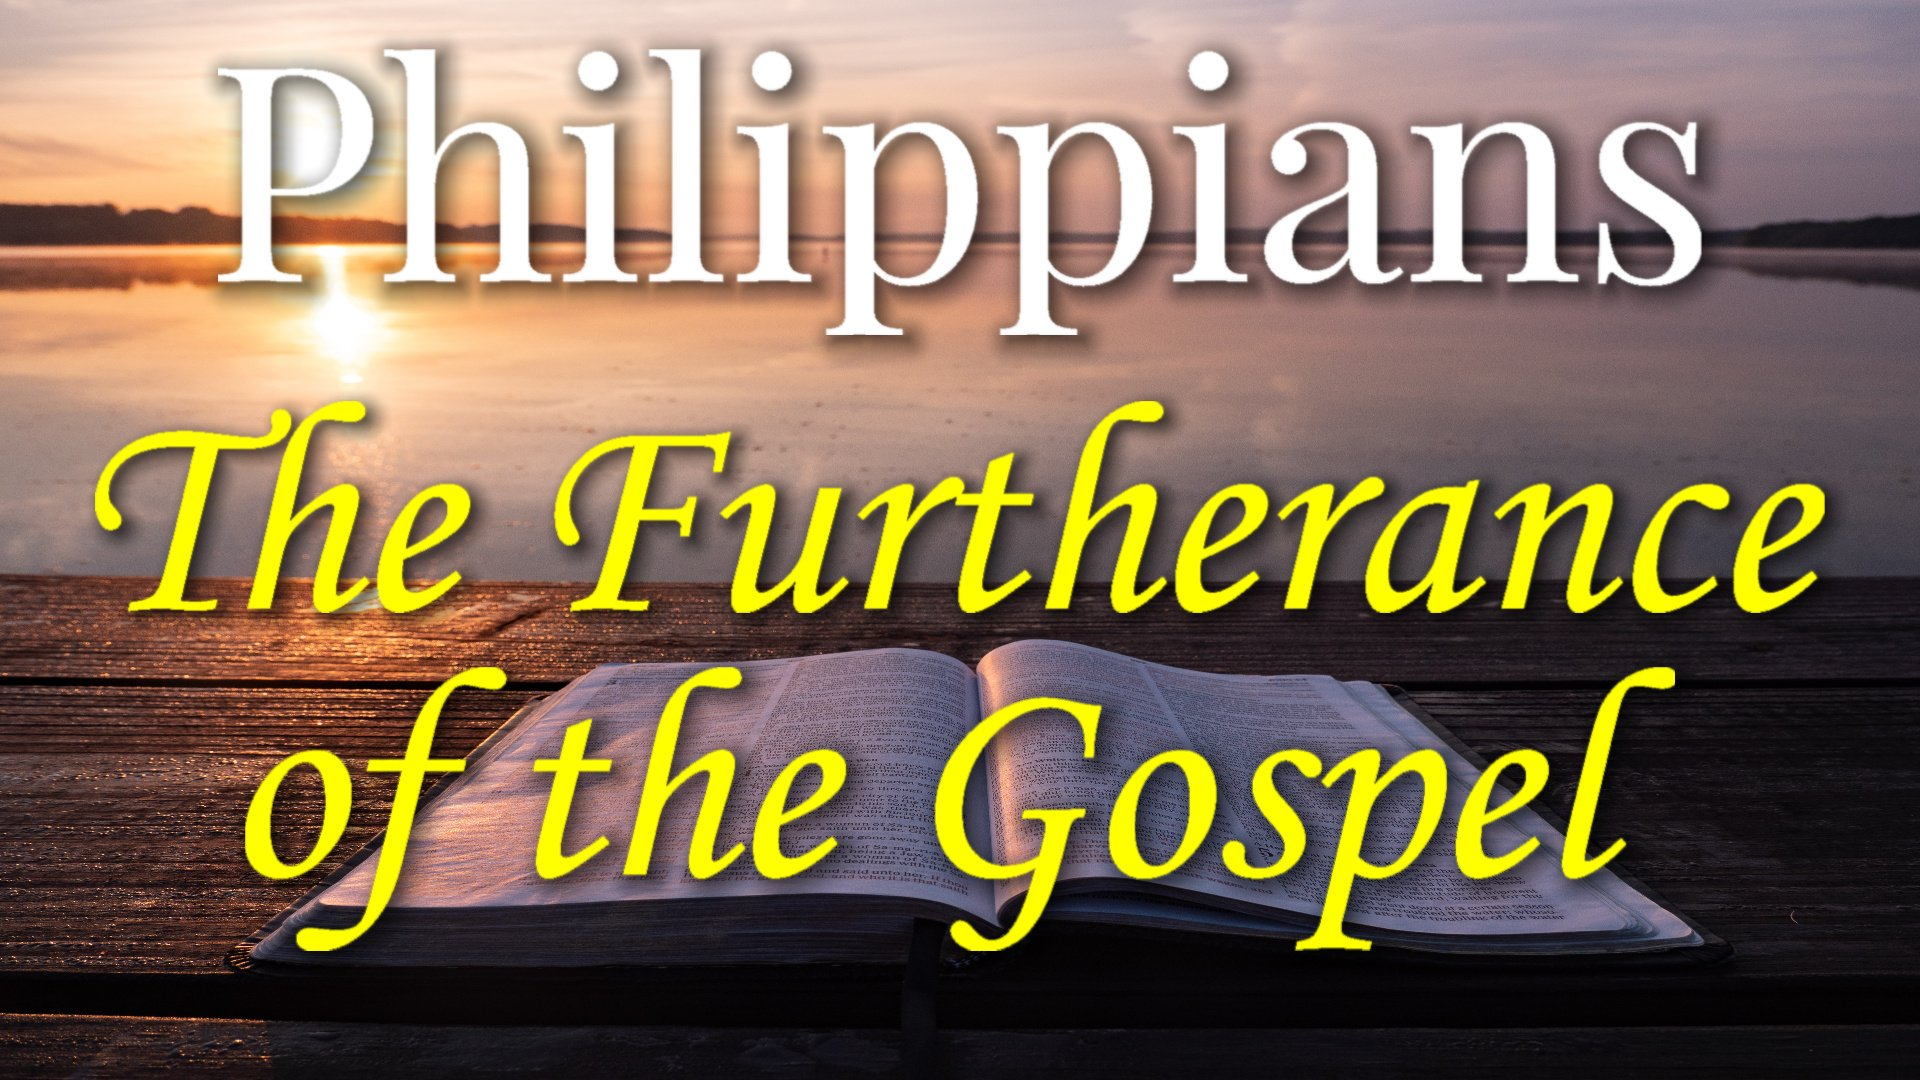 04 The Furtherance of the Gospel